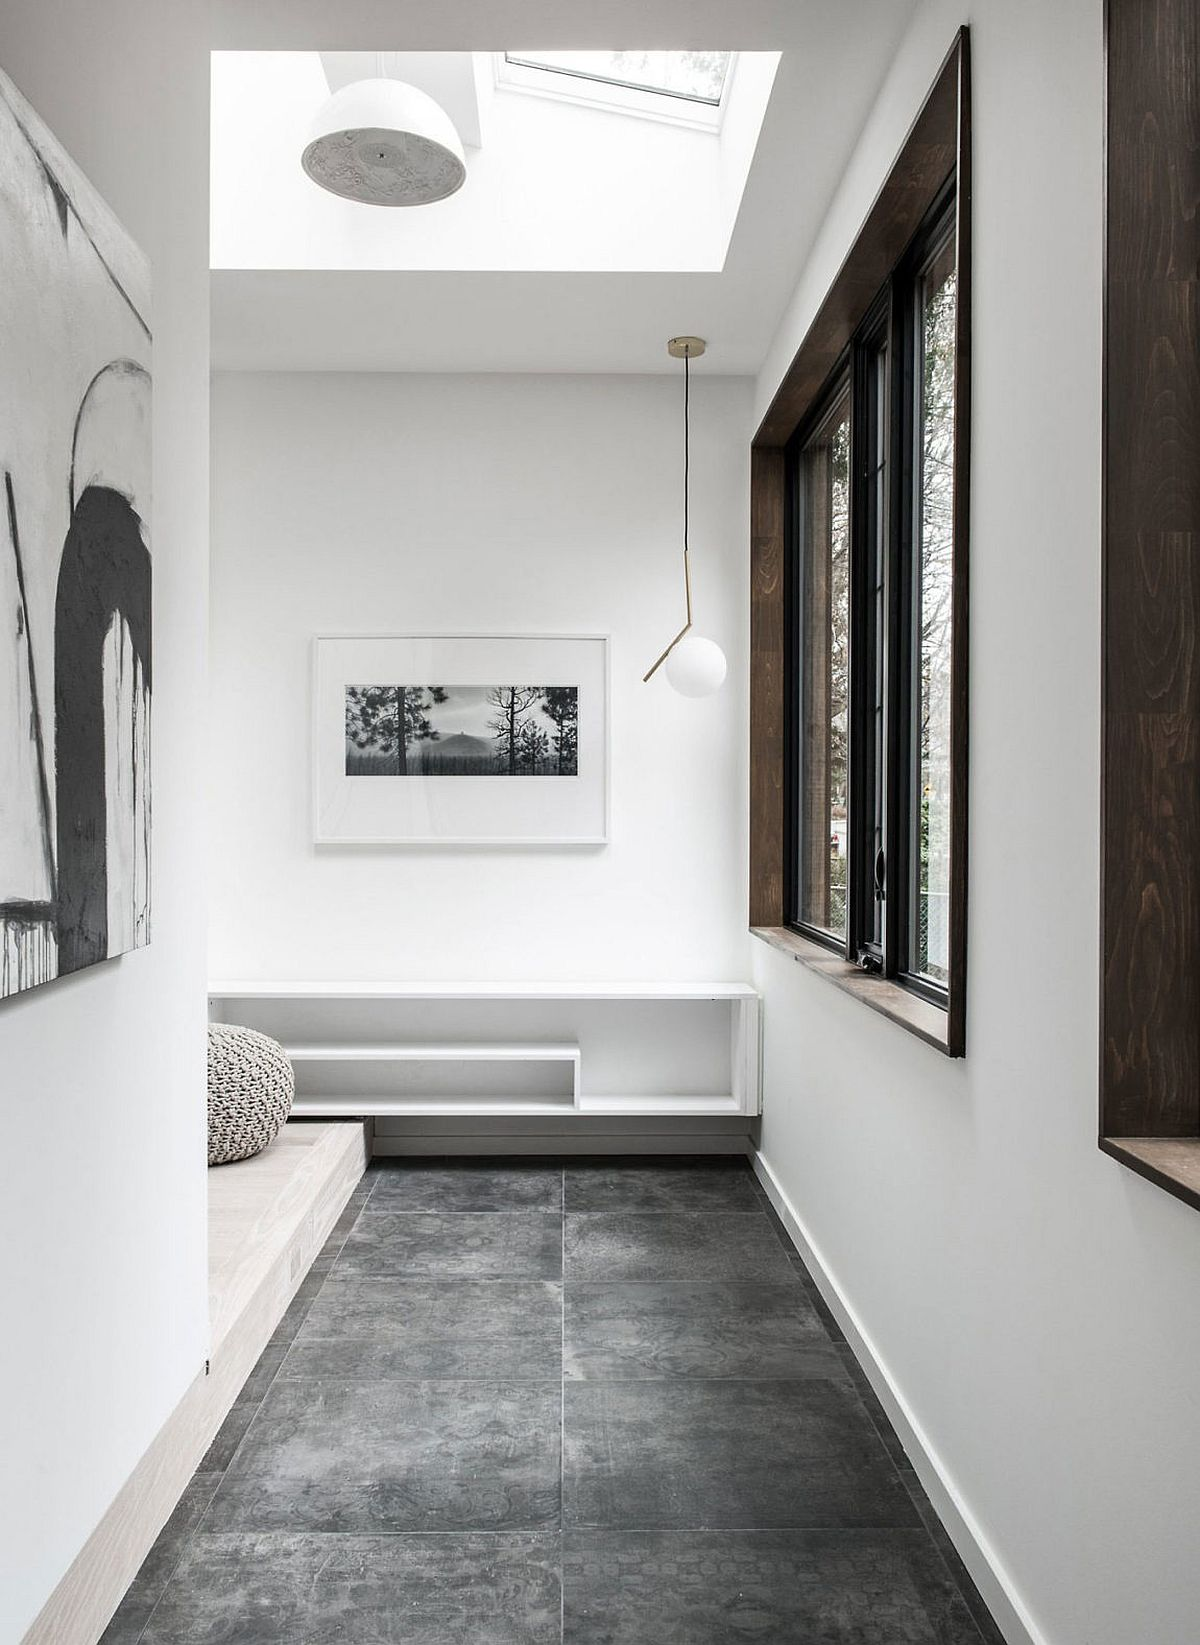 Skylight brings natural ventilation into the modern home